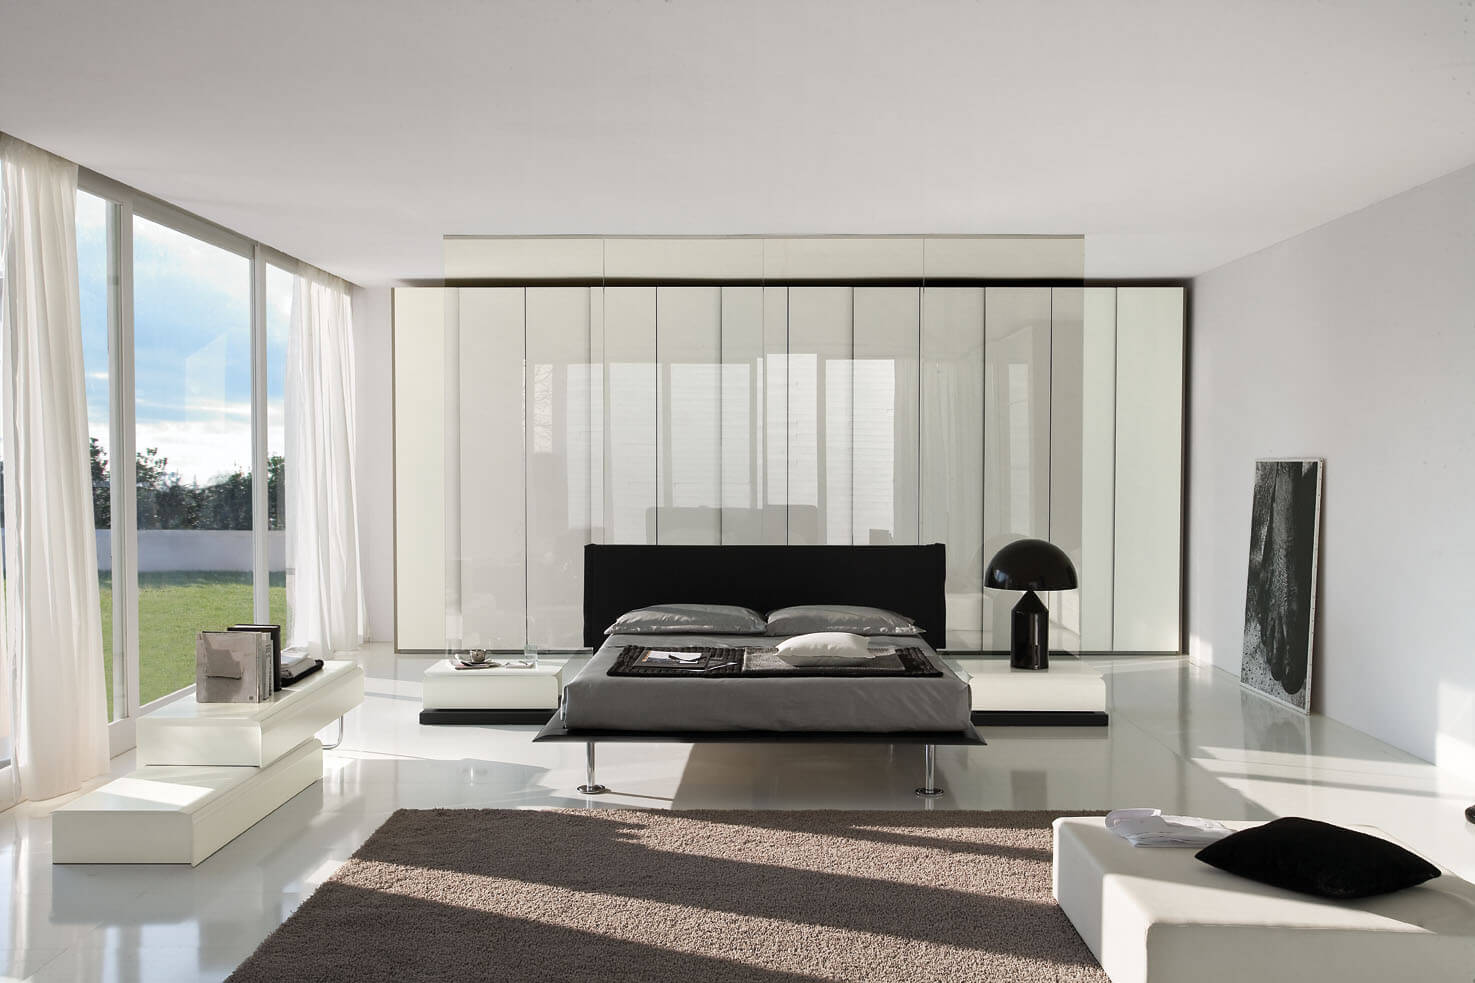 The contemporary bedroom is elegant and sophisticated